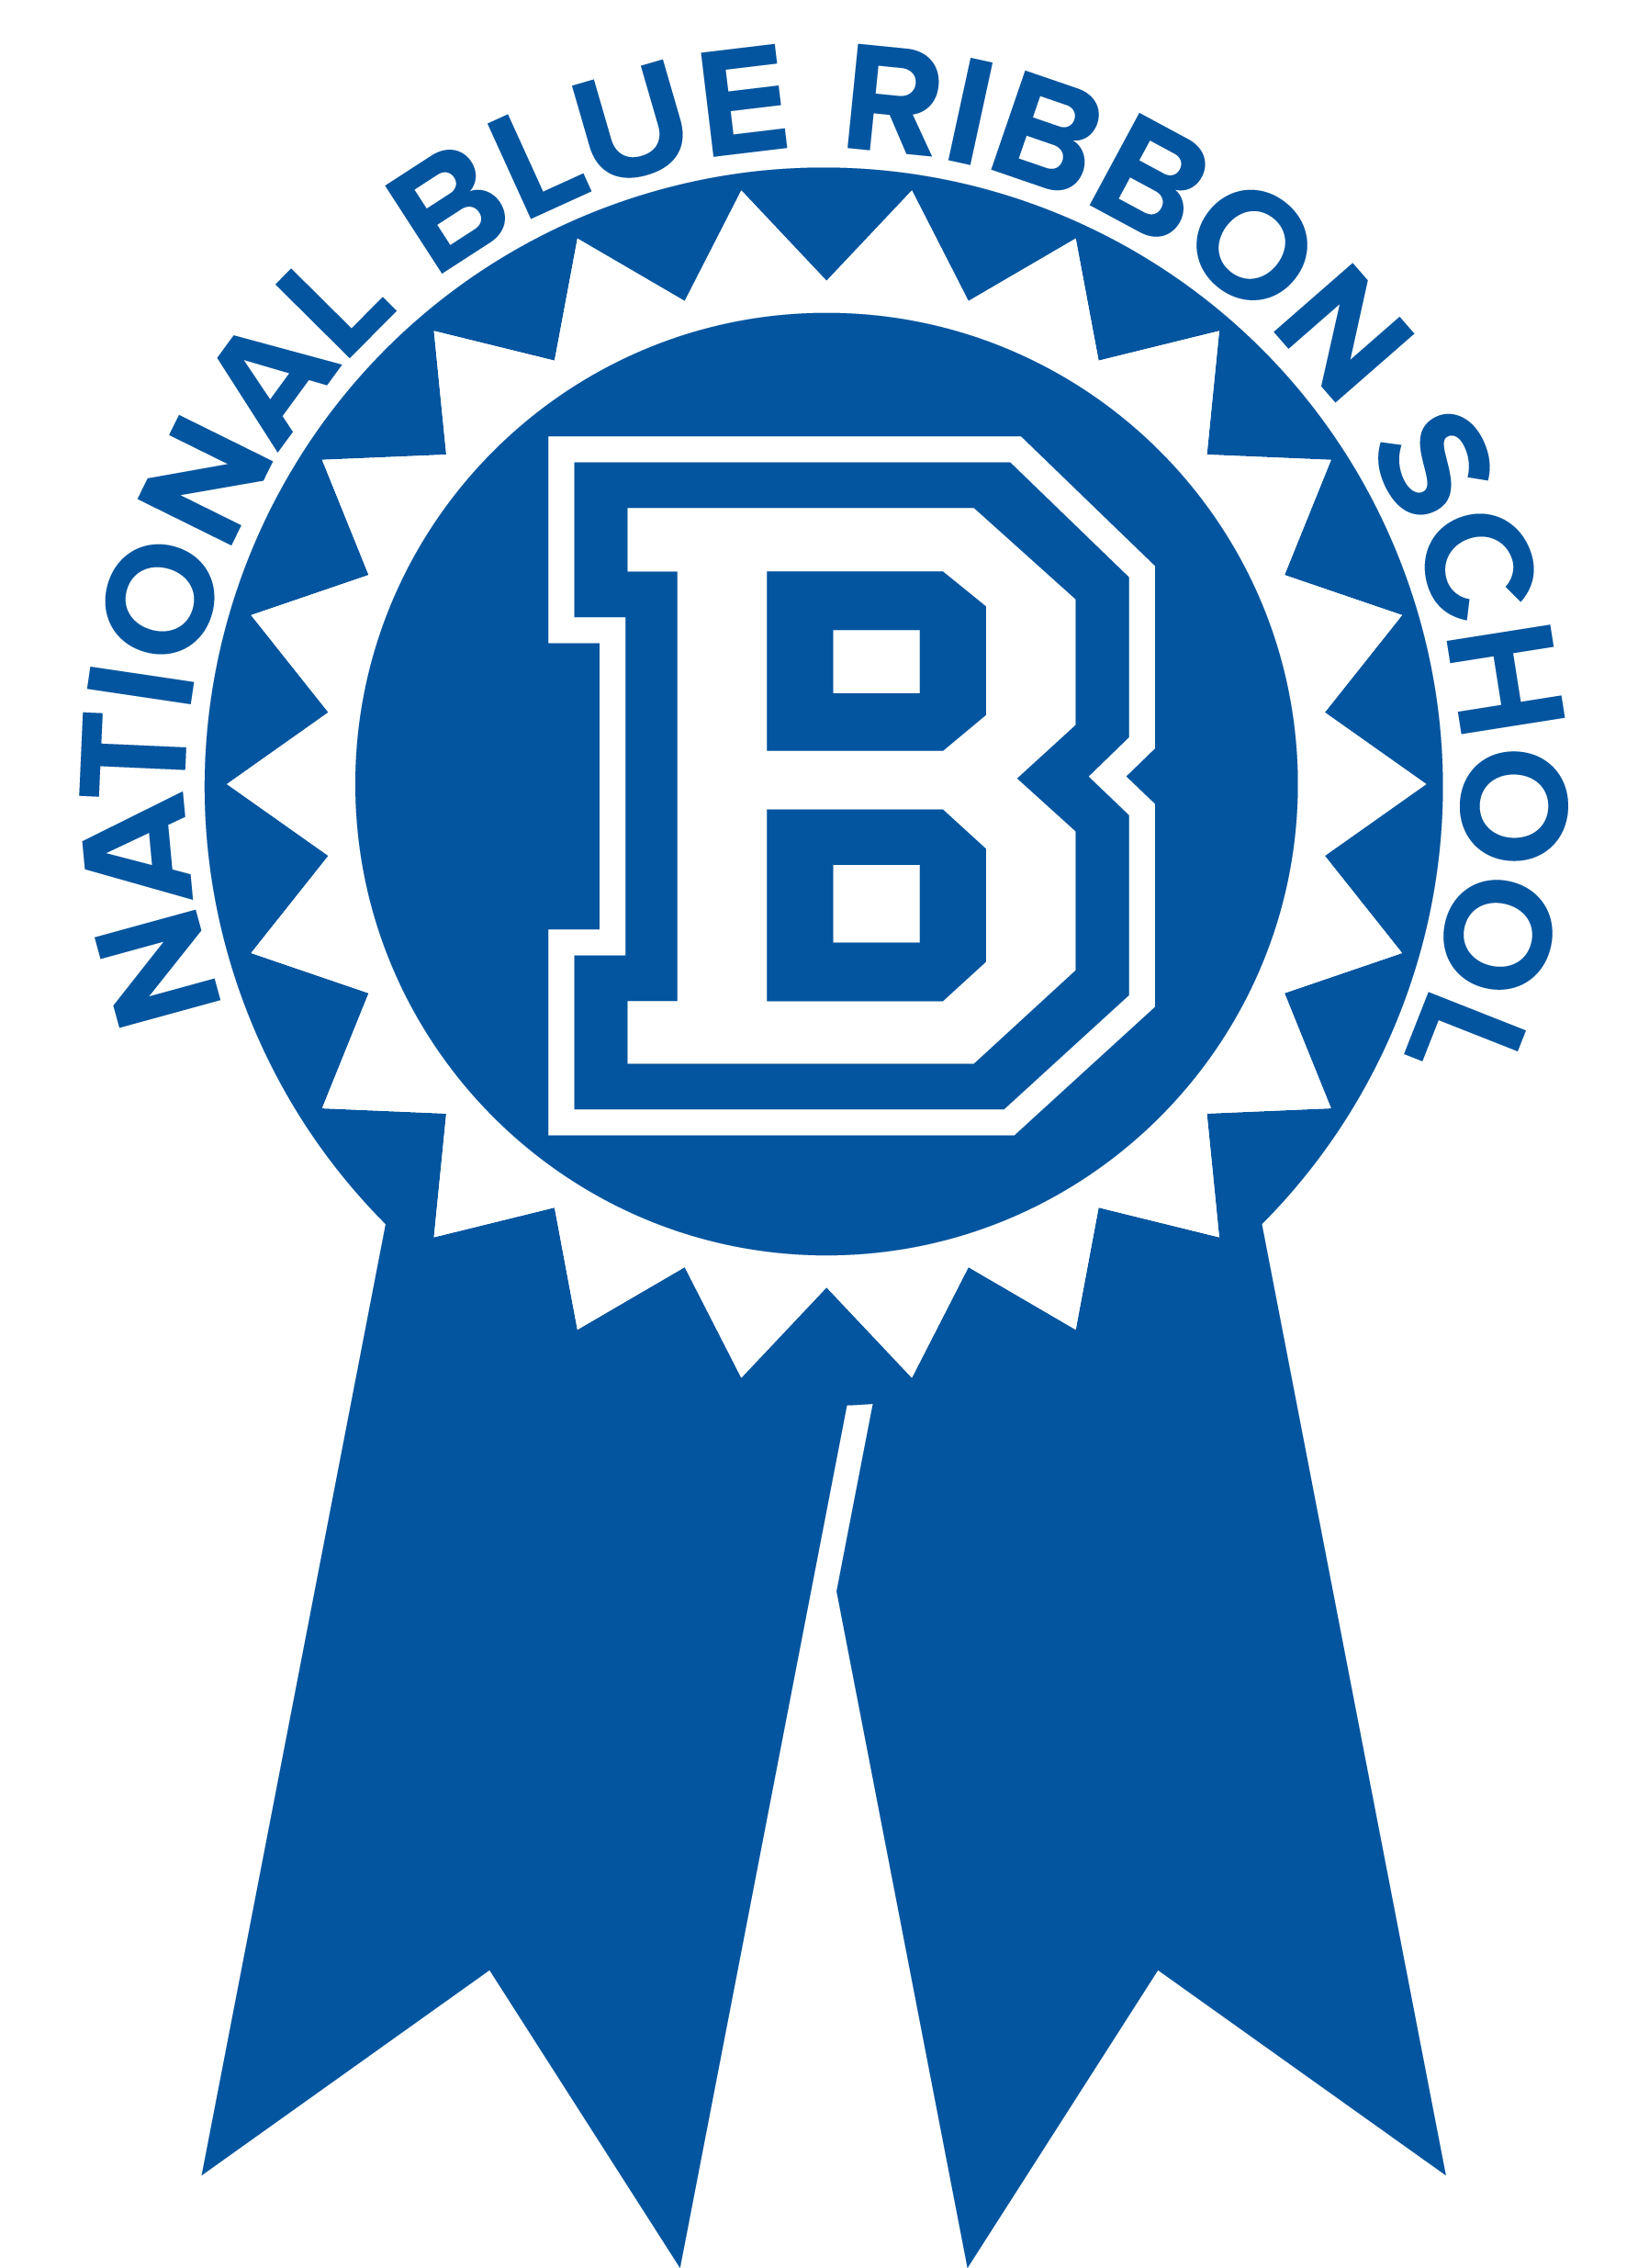 Bradley International National Blue Ribbon School of Excellence